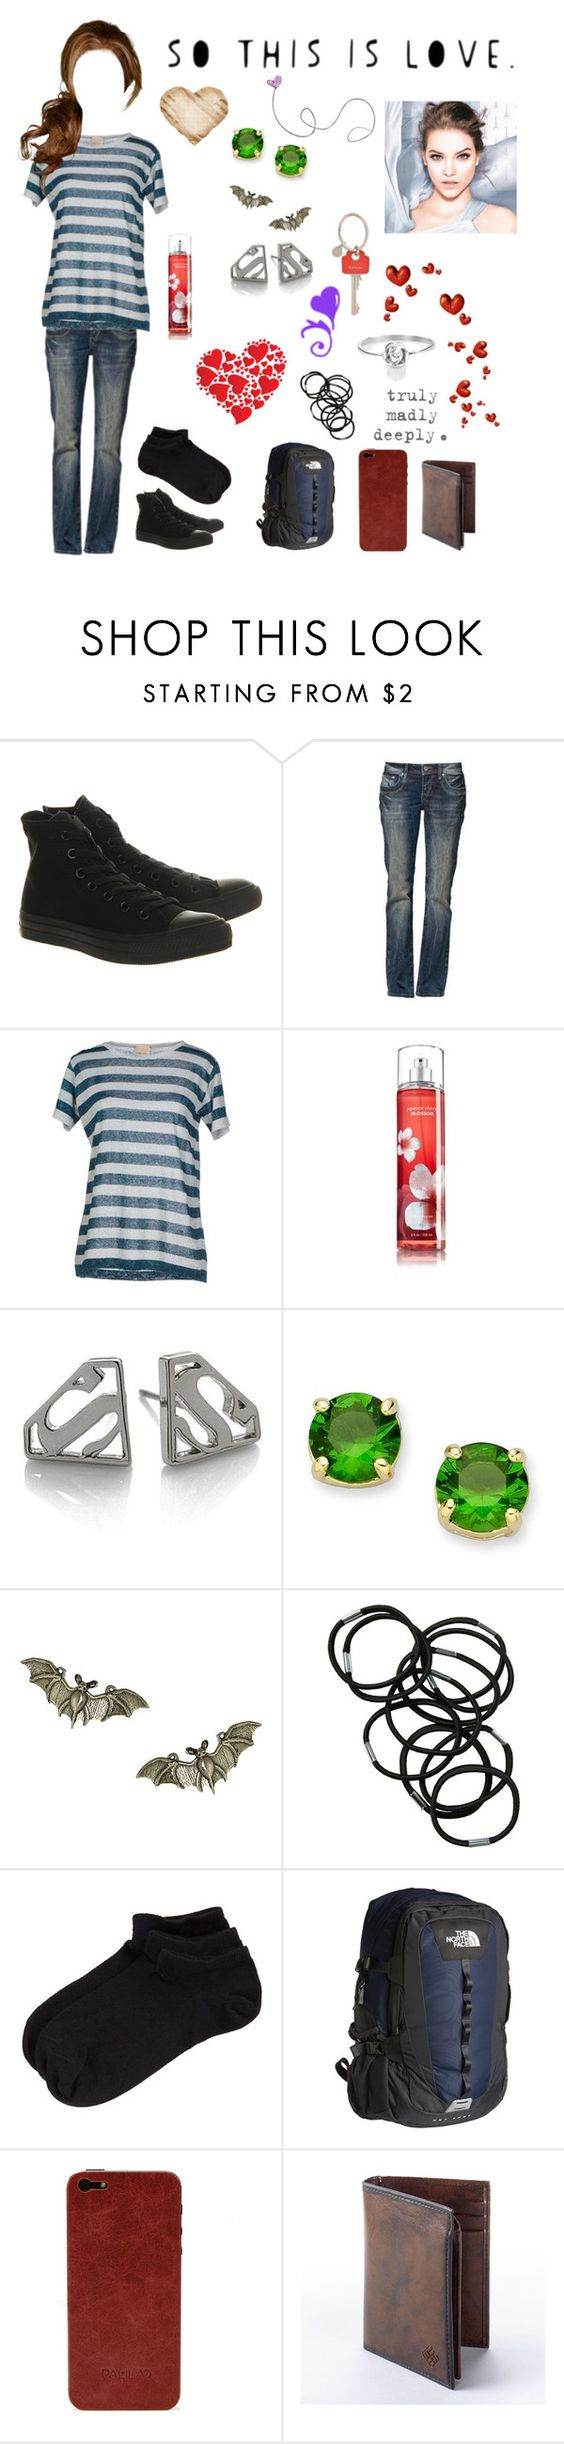 """Ian 23"" by stockmon ❤ liked on Polyvore featuring Converse, Circus Hotel, Noir, Kate Spade, Giles, Monki, Zella, The North Face, Palila and Columbia Sportswear"